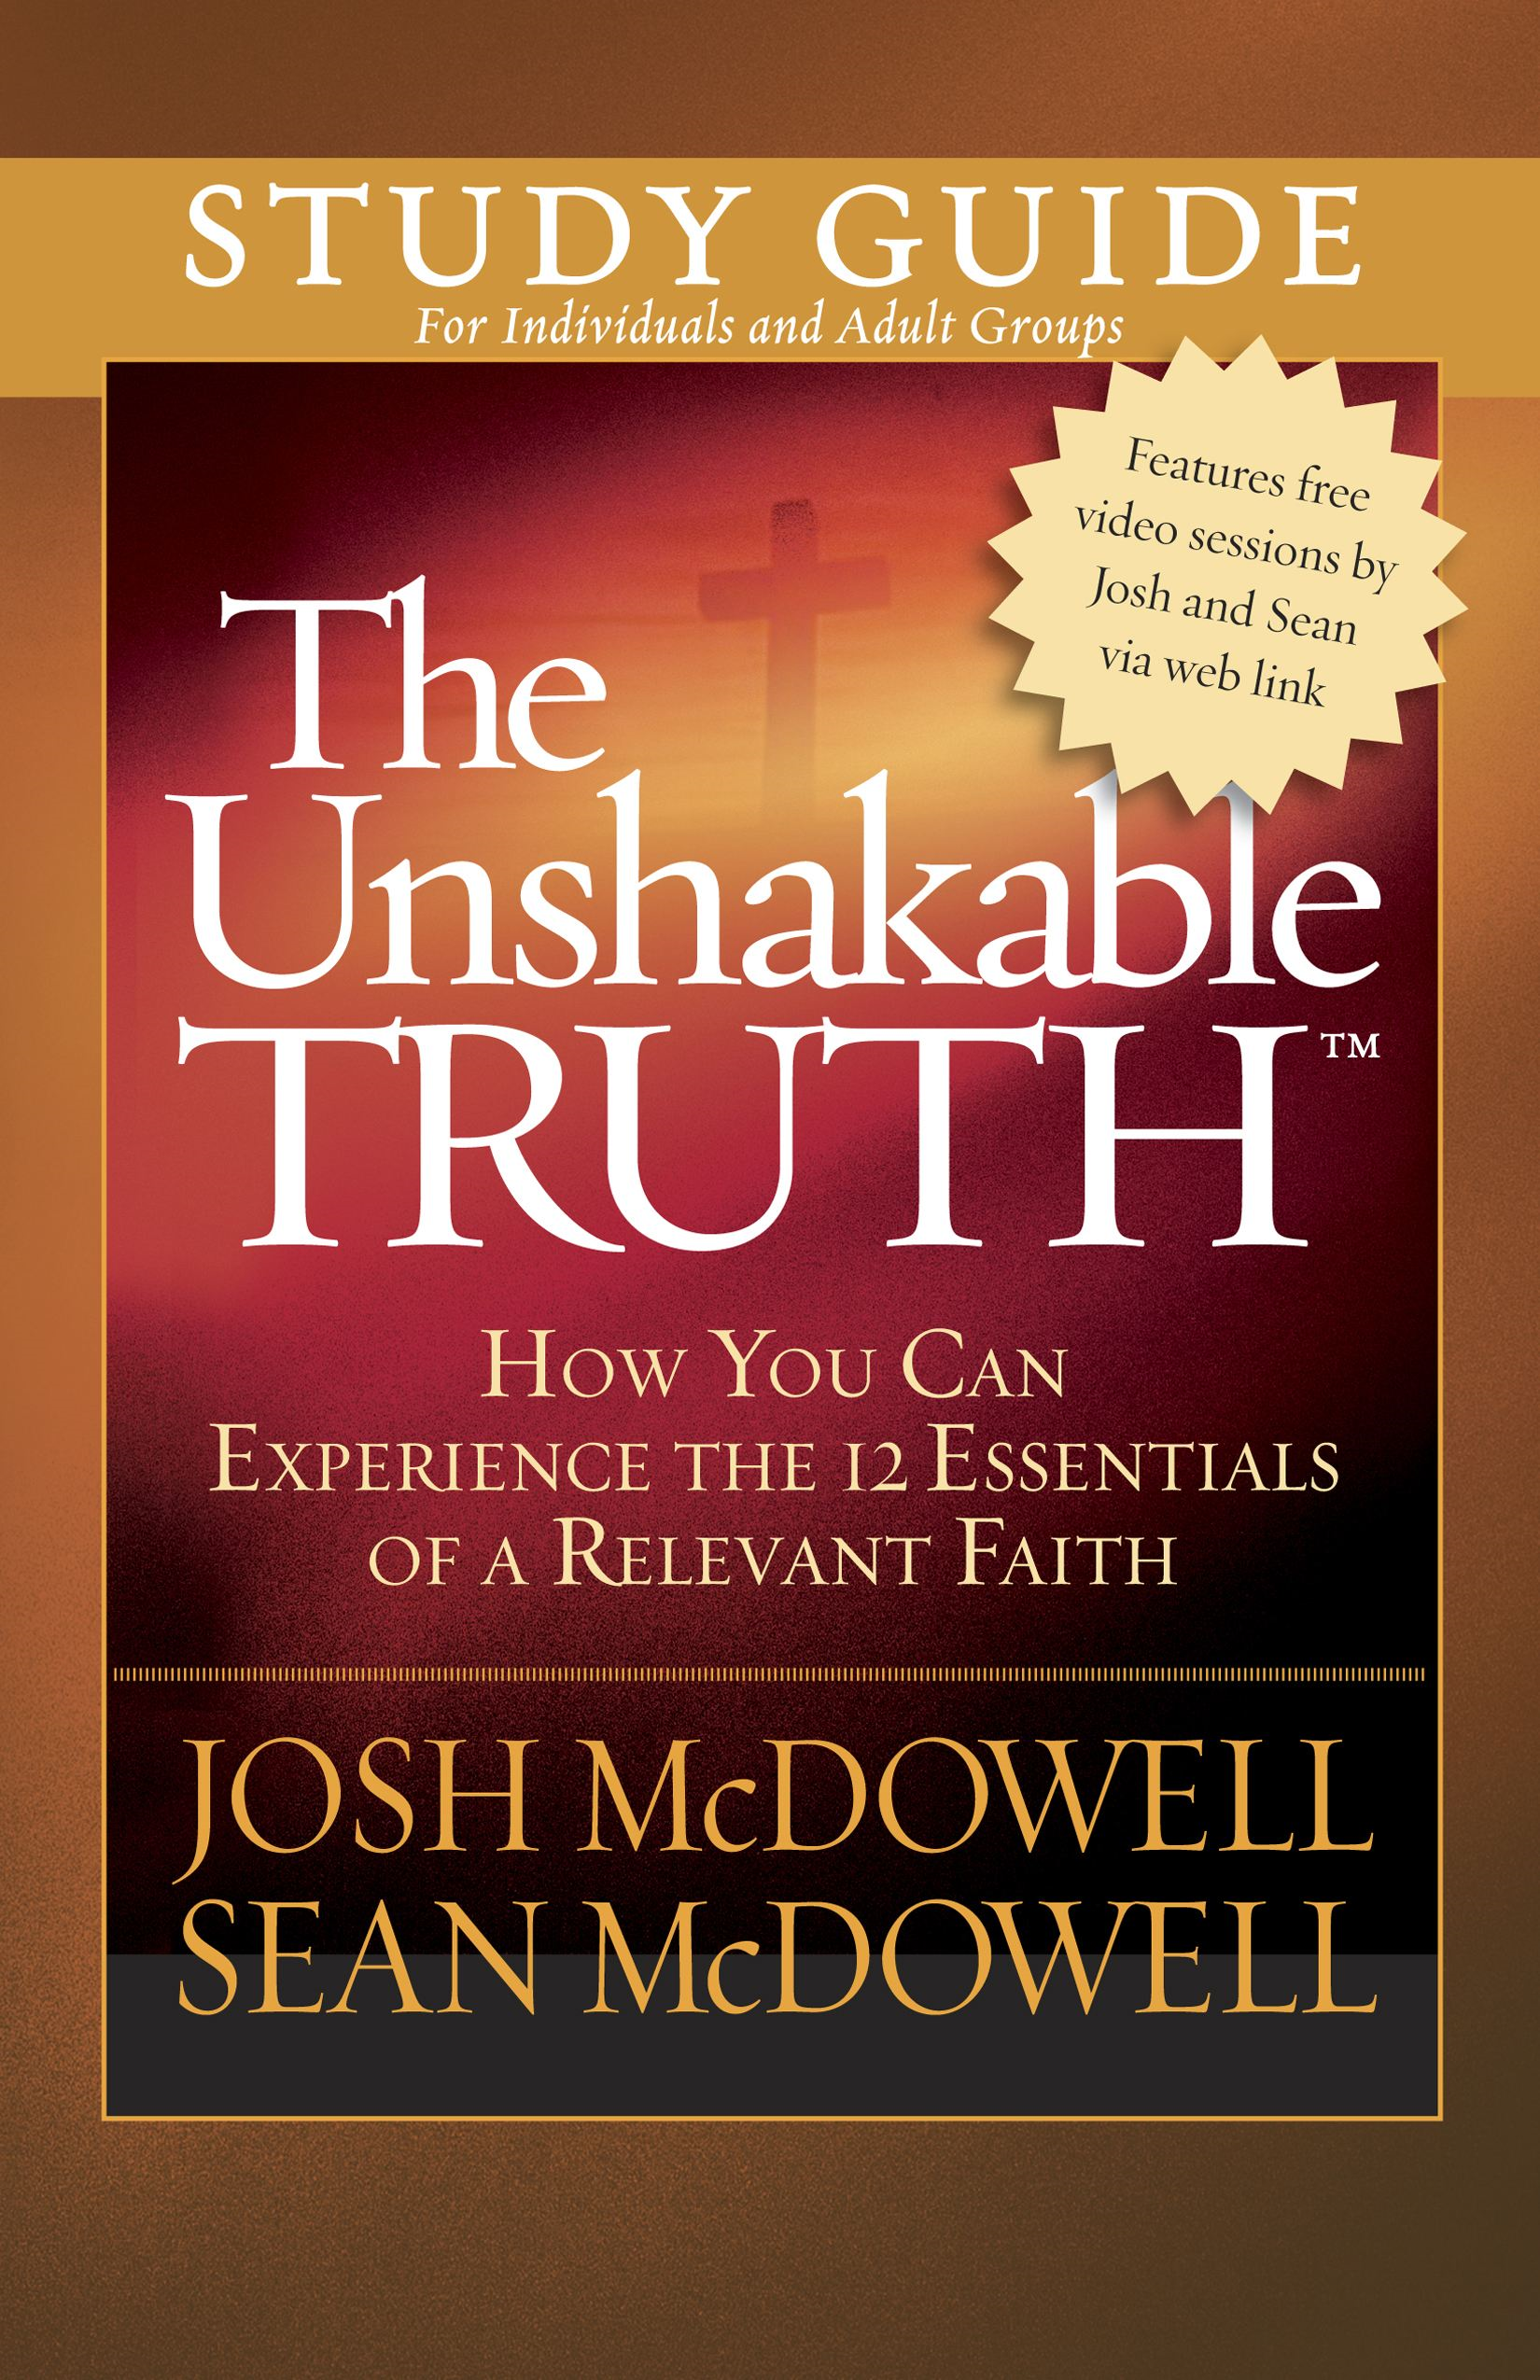 The Unshakable Truth™ Study Guide